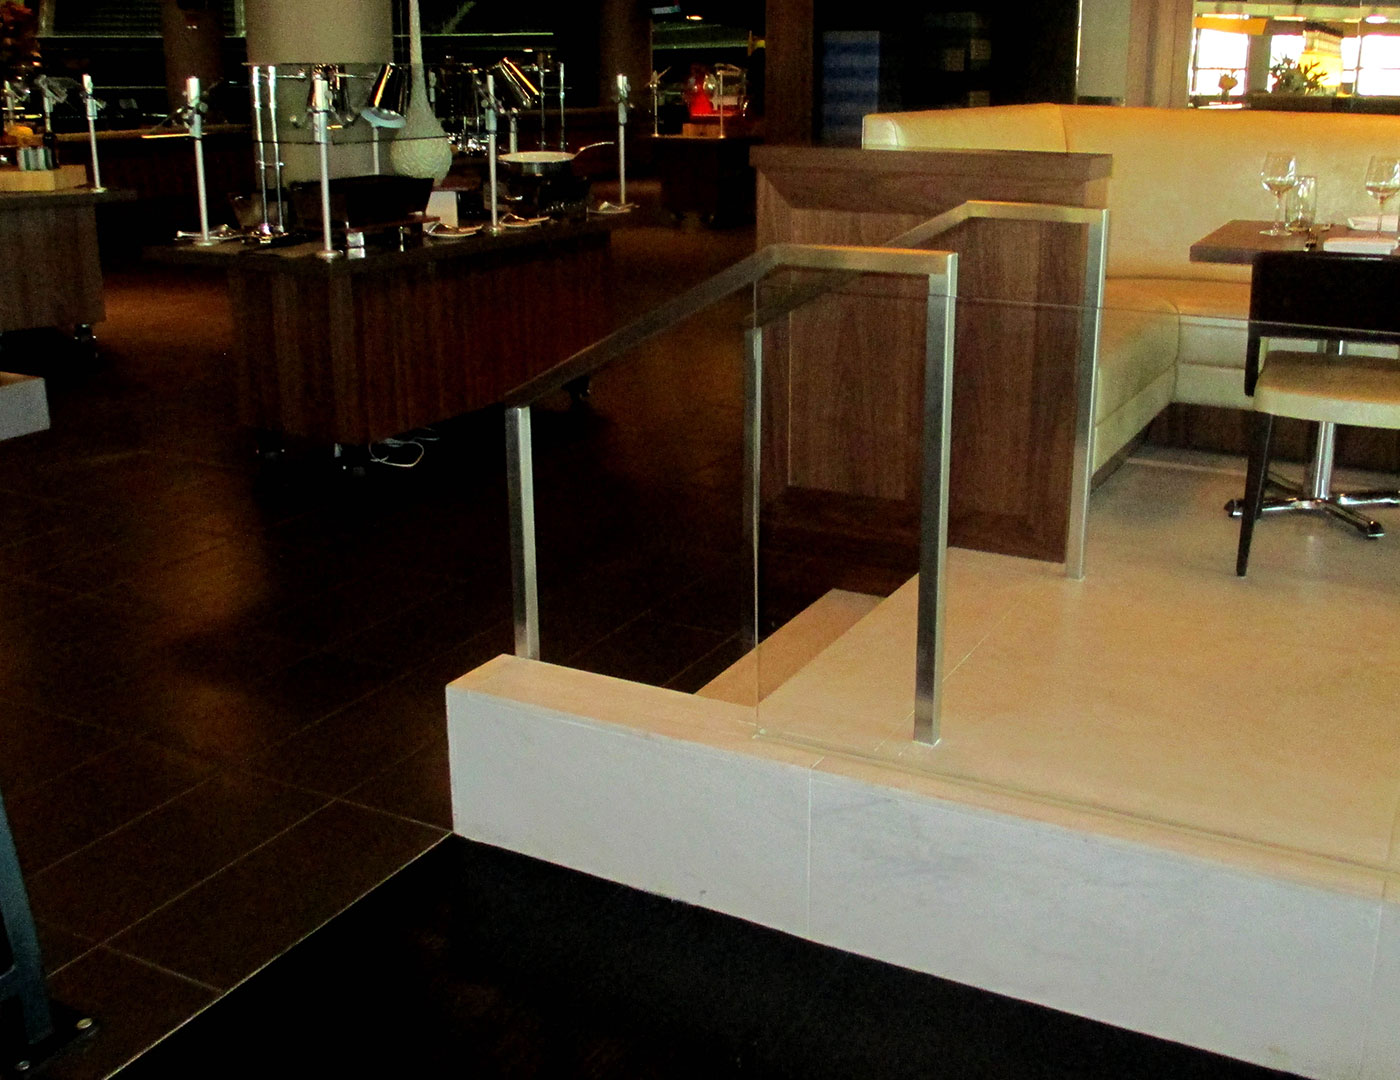 Stainless steel handrail with Track Rail glass railing